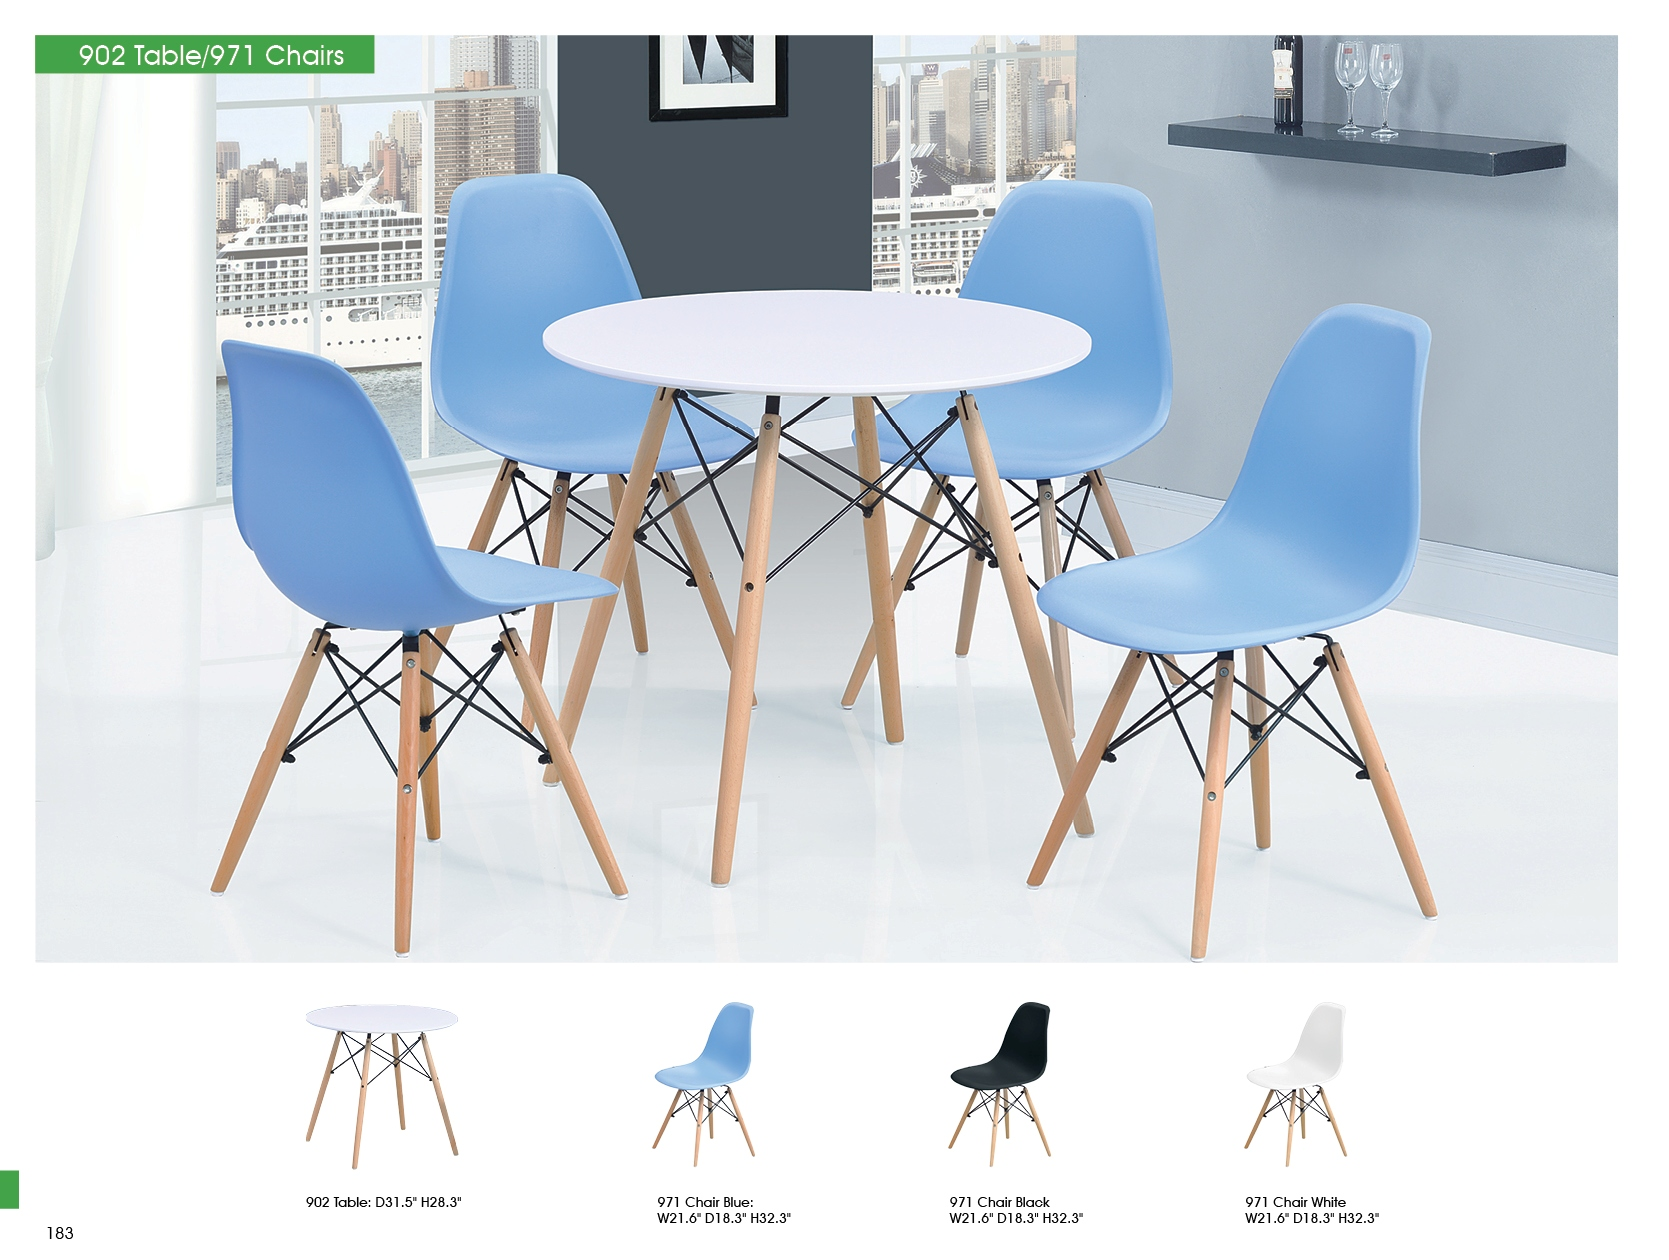 Dining Room Furniture Kitchen Tables and Chairs Sets 902 Table Only